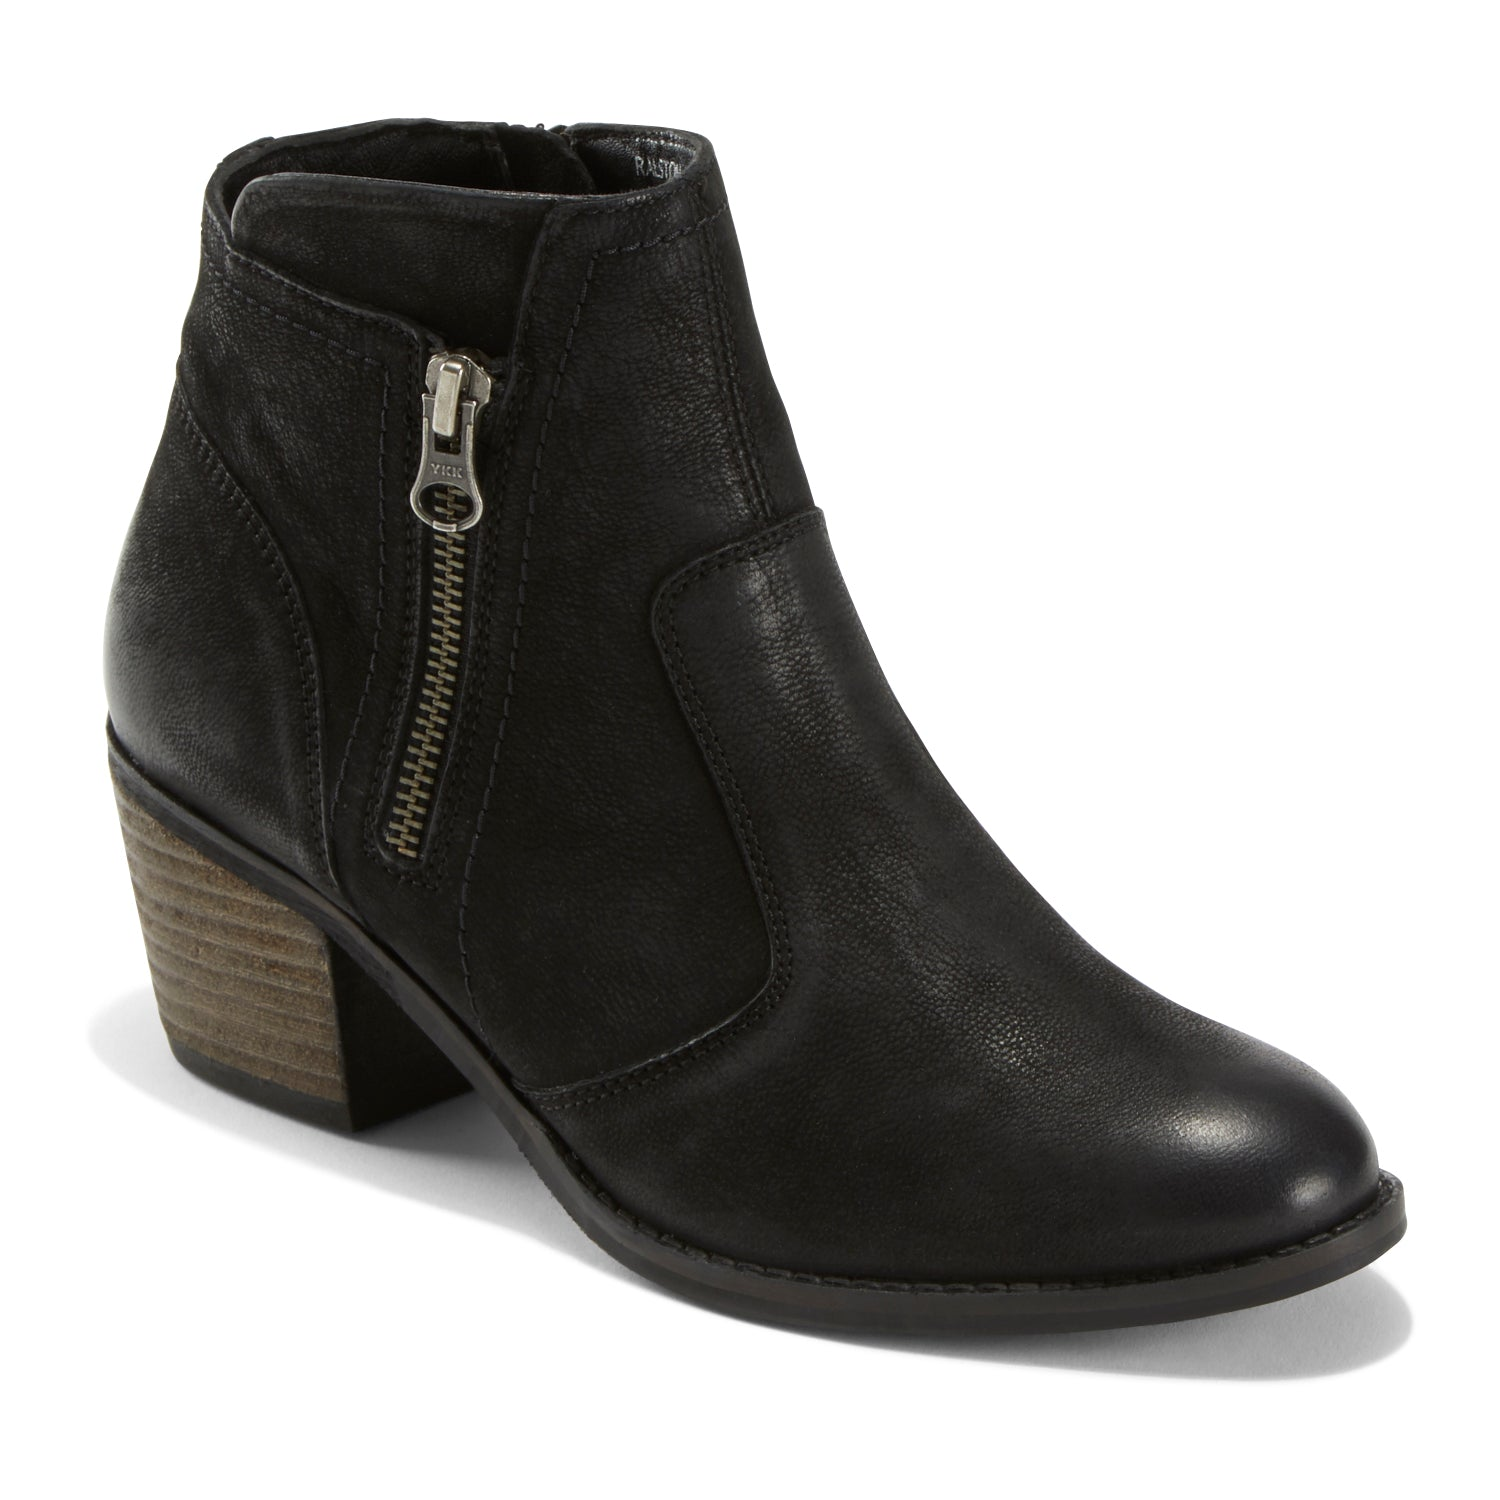 A touch rock n roll glam, a touch modern sophistication. It\\\'s a perfect balance achieved by this stylish bootie, crafted from eco conscious materials and designed for absolute comfort.